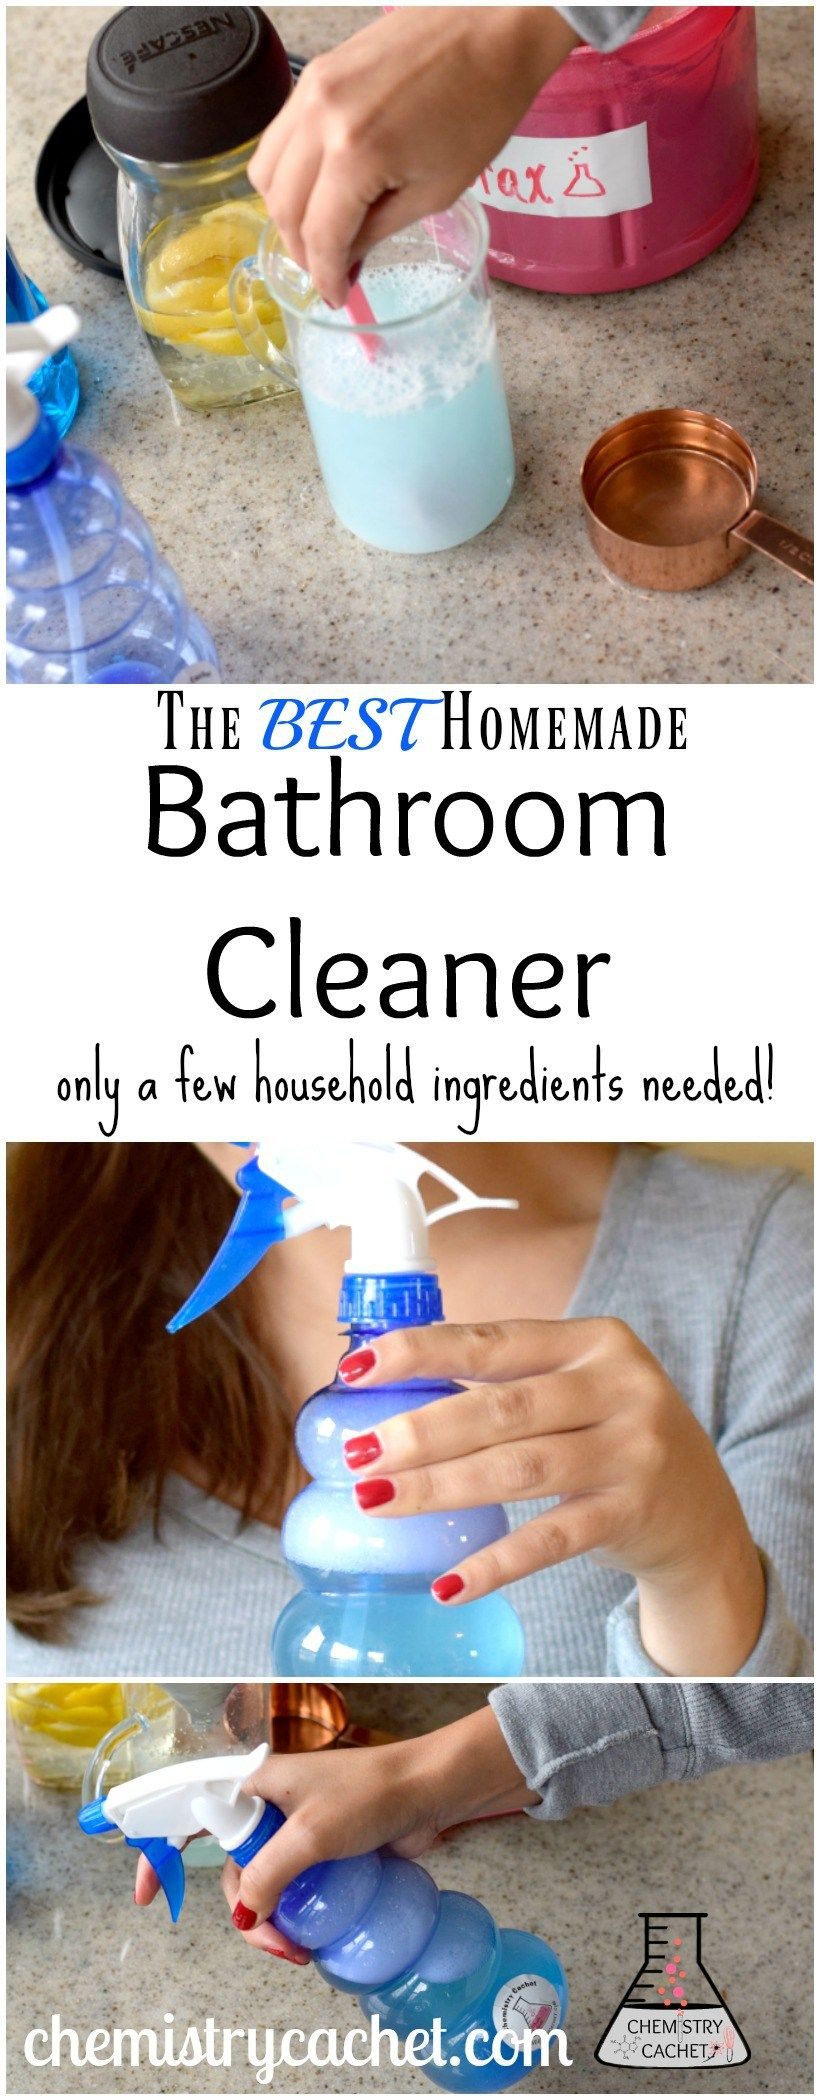 The Best Homemade Bathroom Cleaner Scientifically Proven Trucos